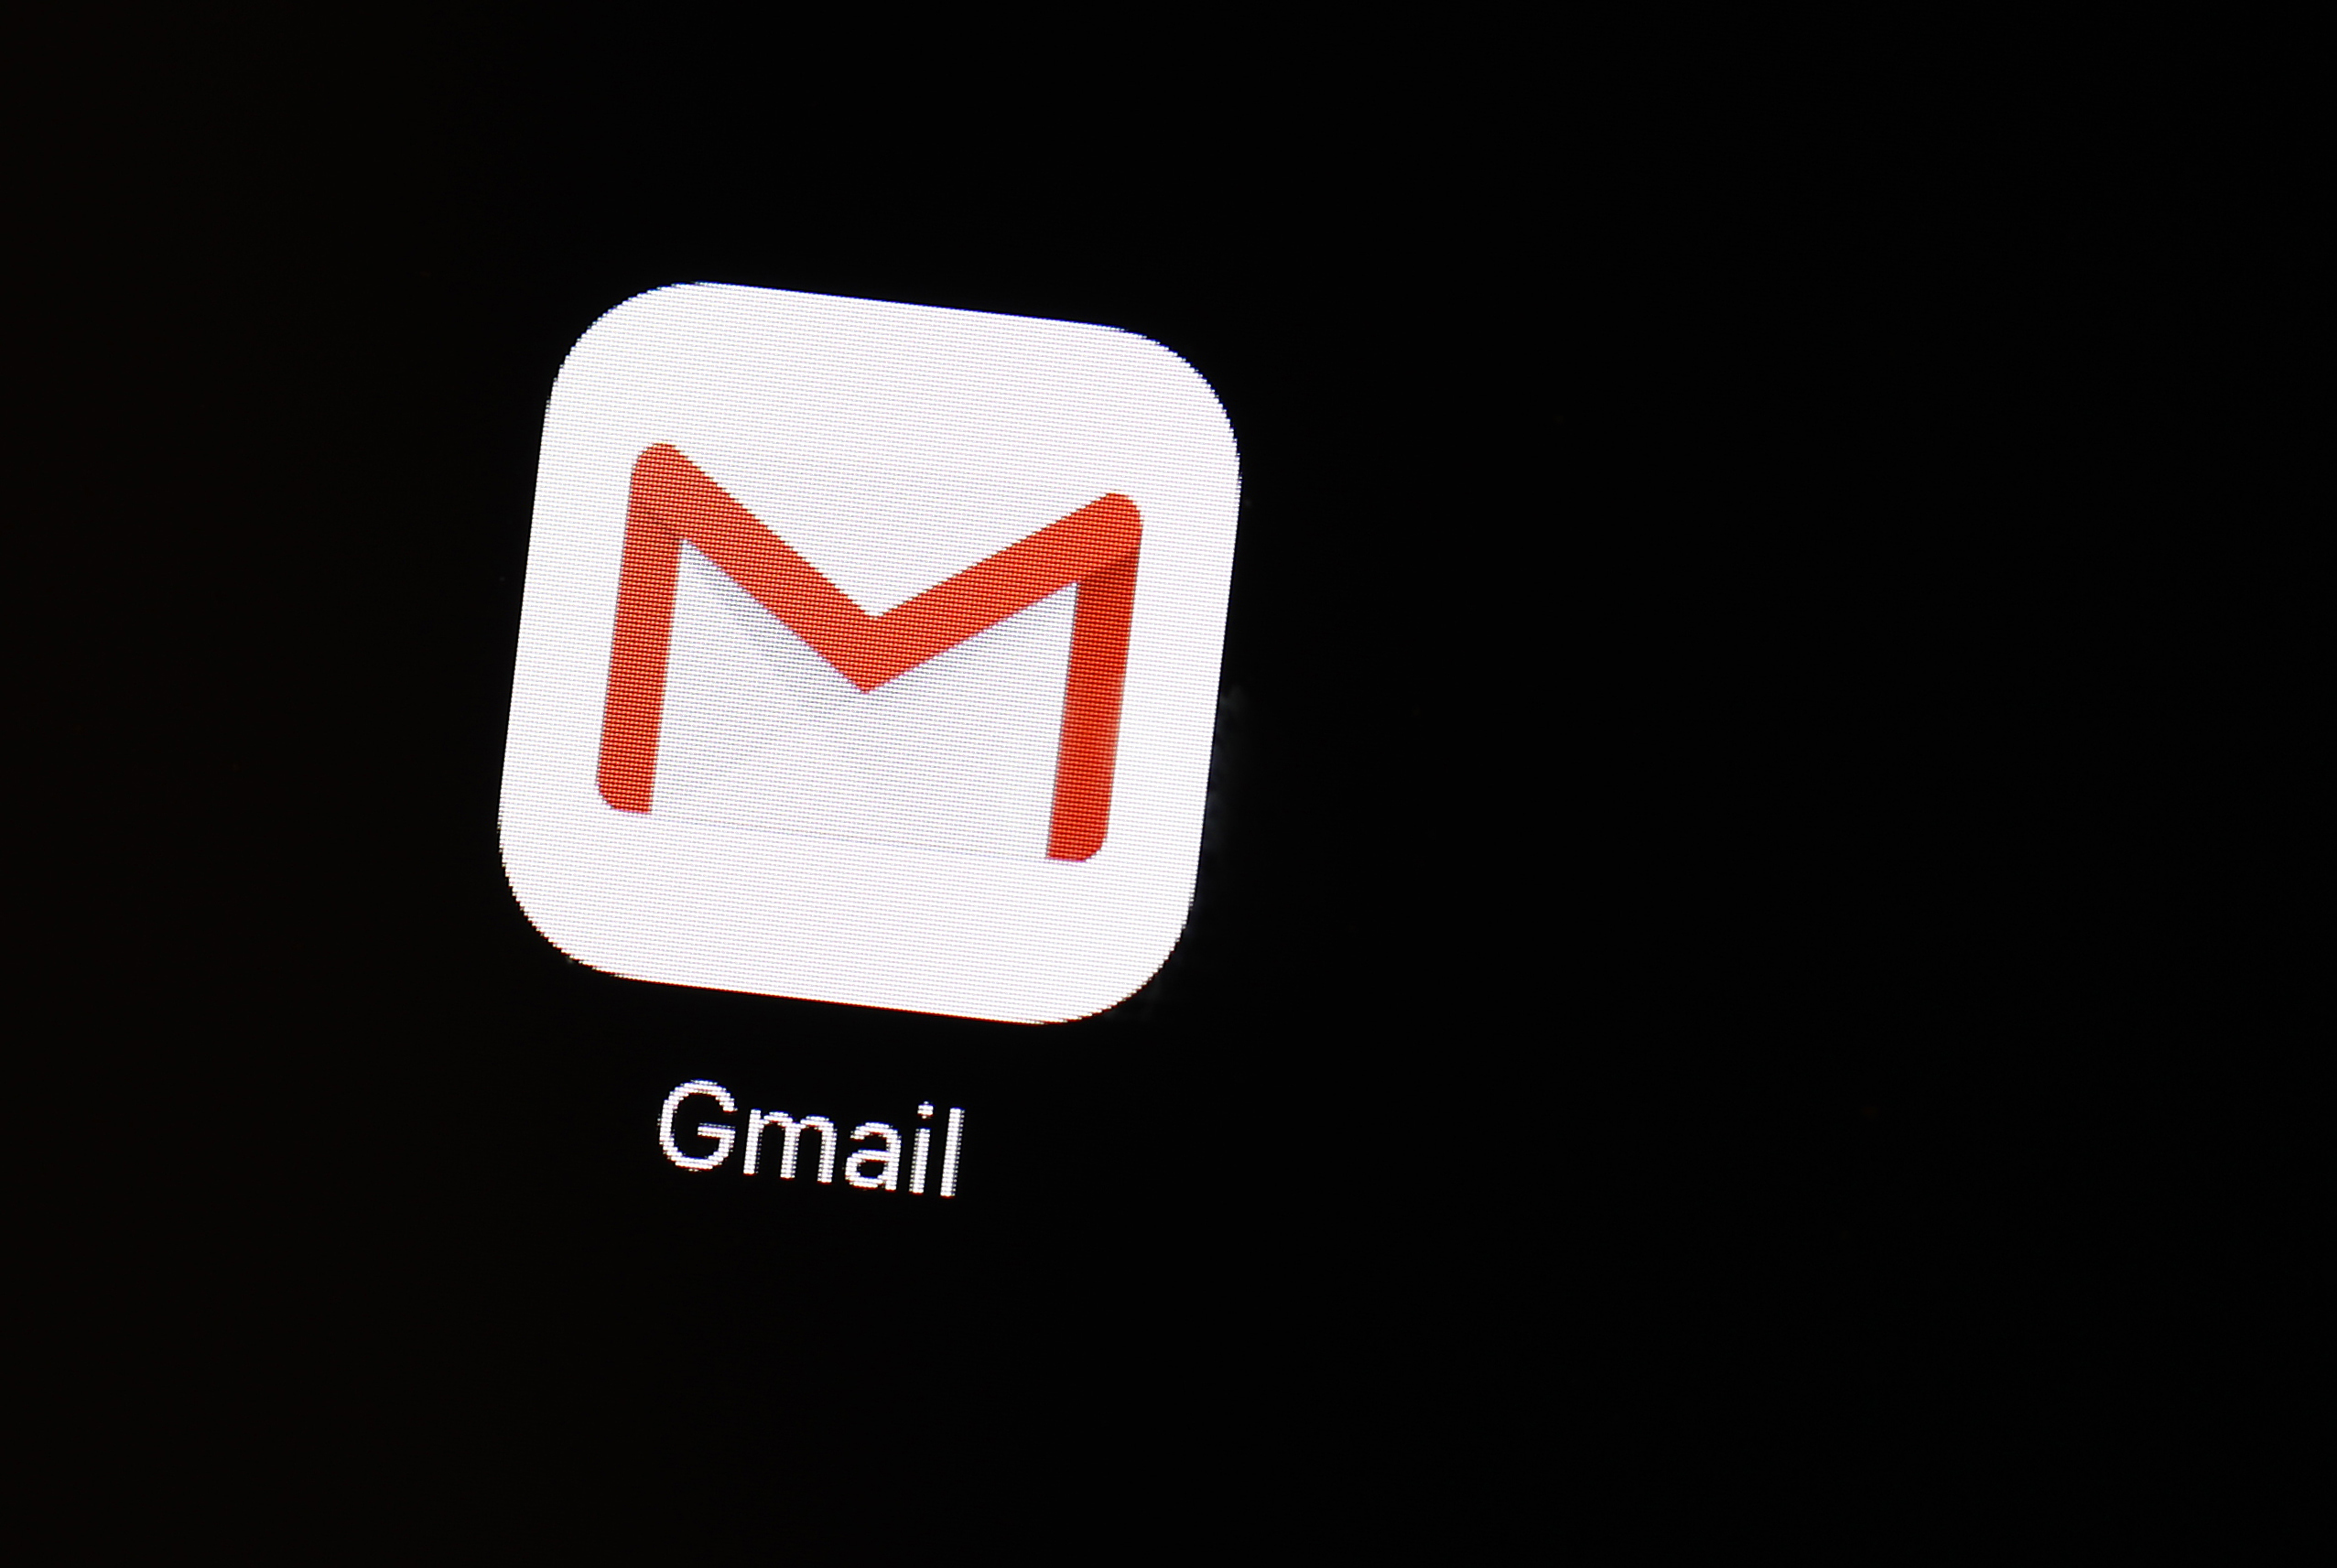 This March 20, 2018, file photo shows the Gmail app on an iPad in Baltimore. Consumers report spending five hours a day checking email, according to a 2019 study byAdobe. That's five hours each day we could be using for exercise, family time, work projects and sleep.